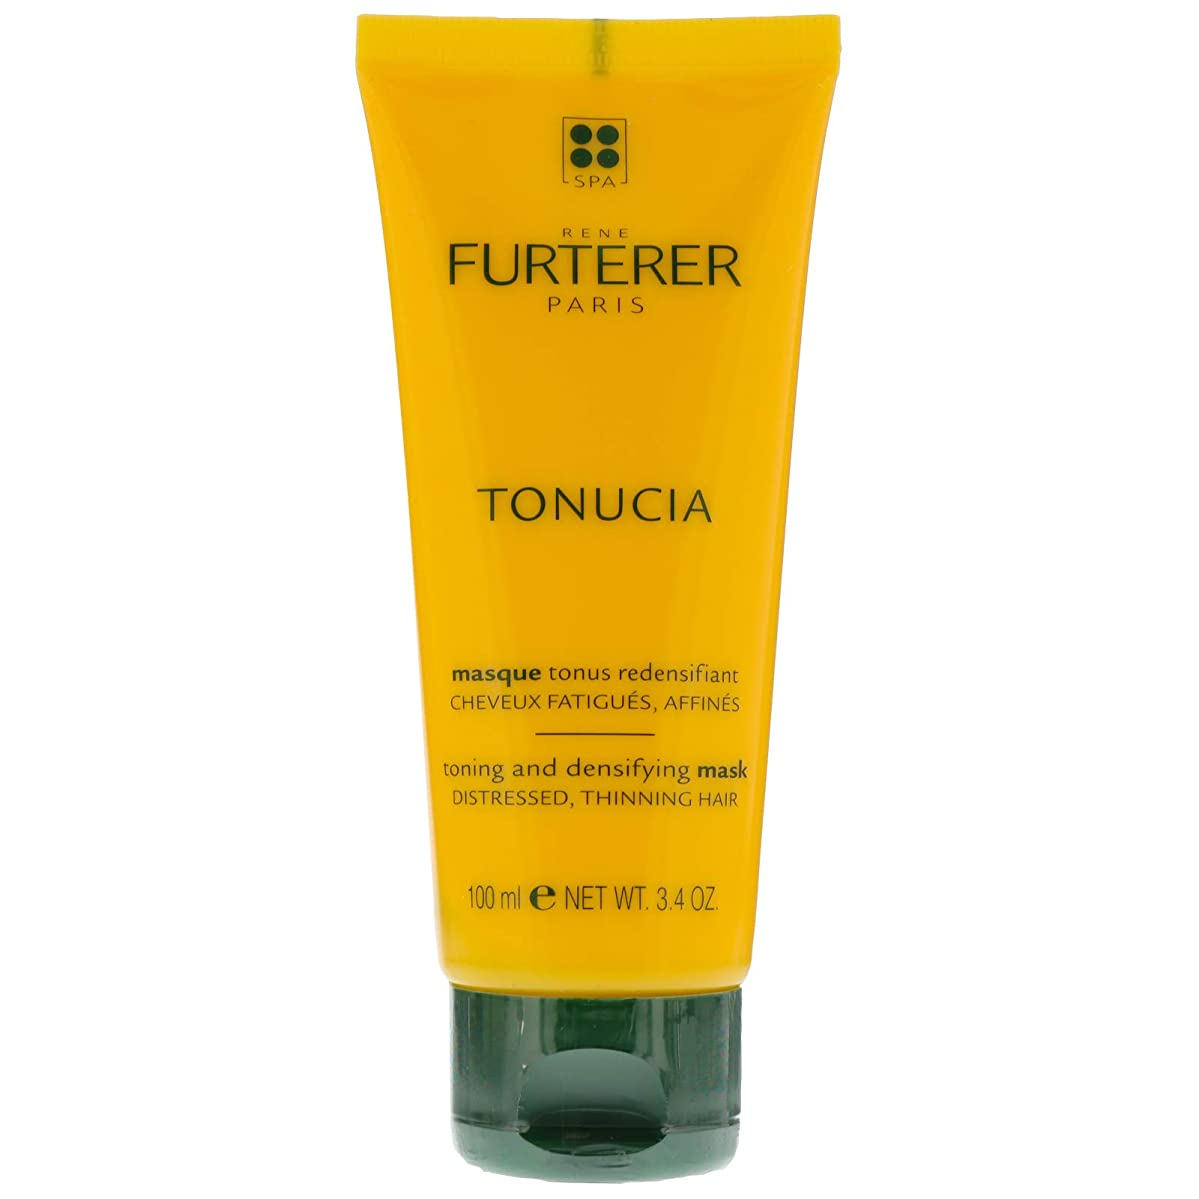 たらいホームレス溶岩ルネ フルトレール Tonucia Thickening Ritual Toning and Densifying Mask (Distressed, Thinning Hair) 100ml/3.4oz並行輸入品